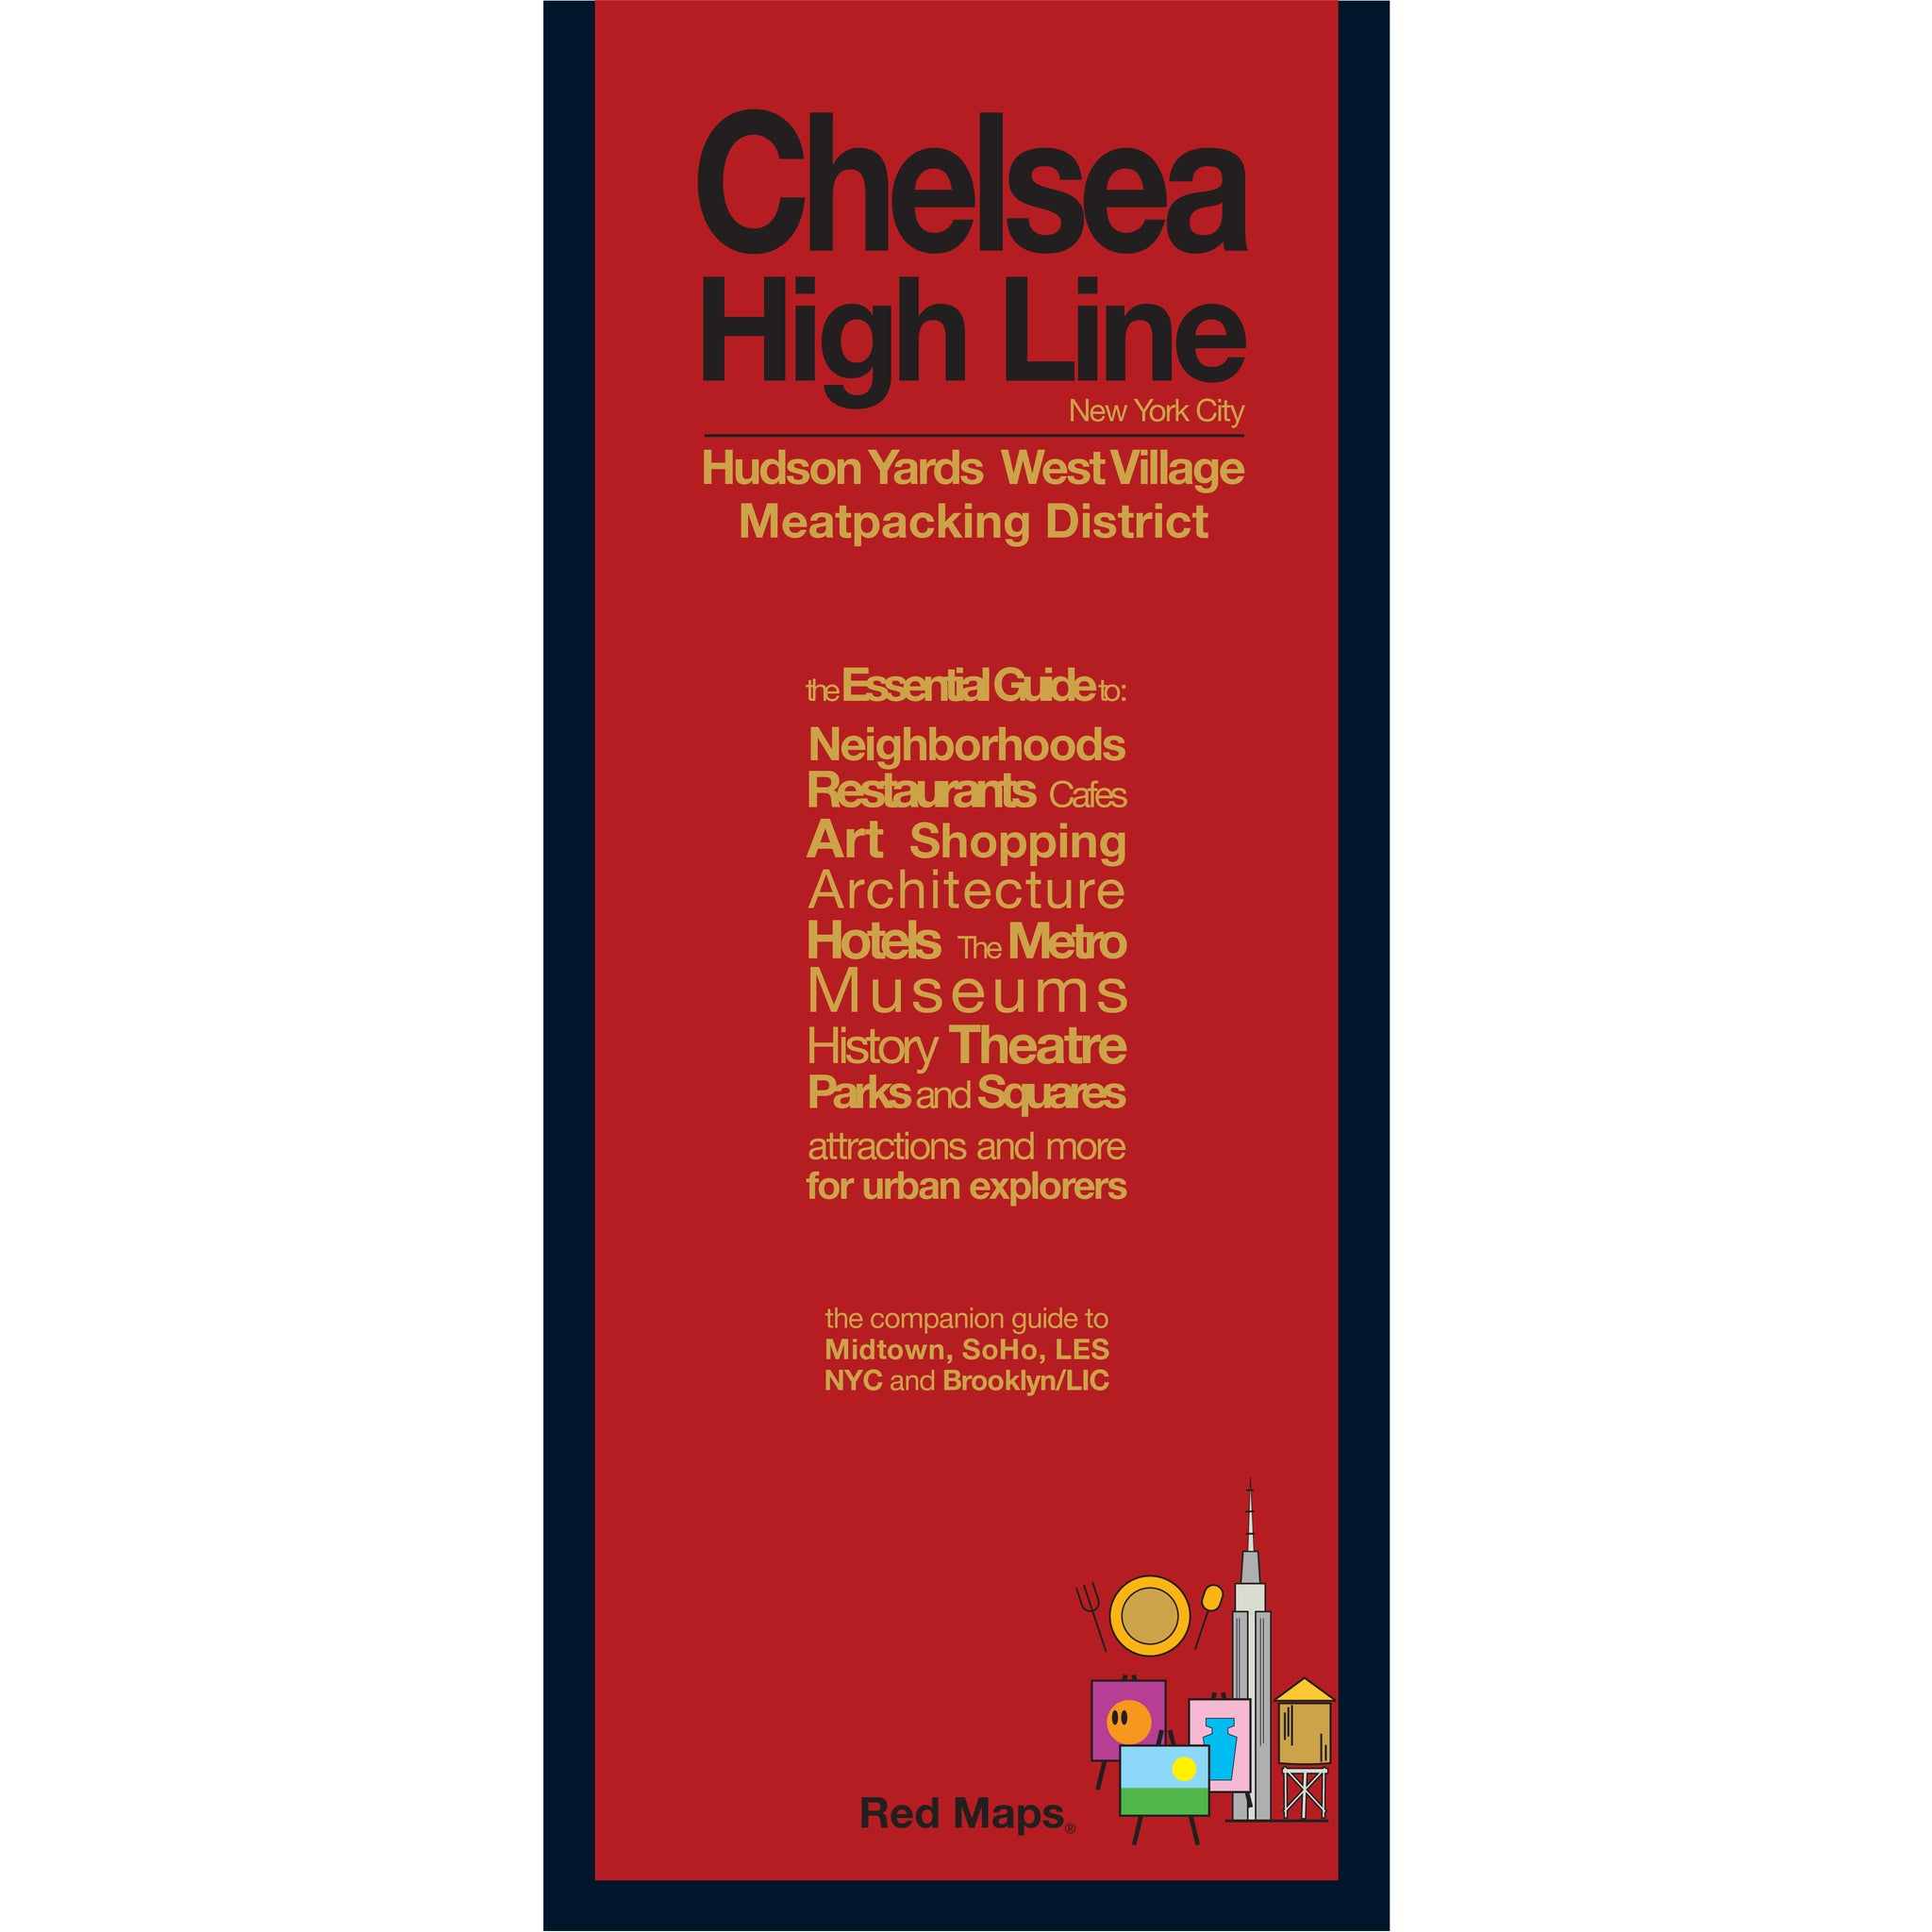 foldout map of Chelsea and High Line neighborhoods of Manhattan with a red cover